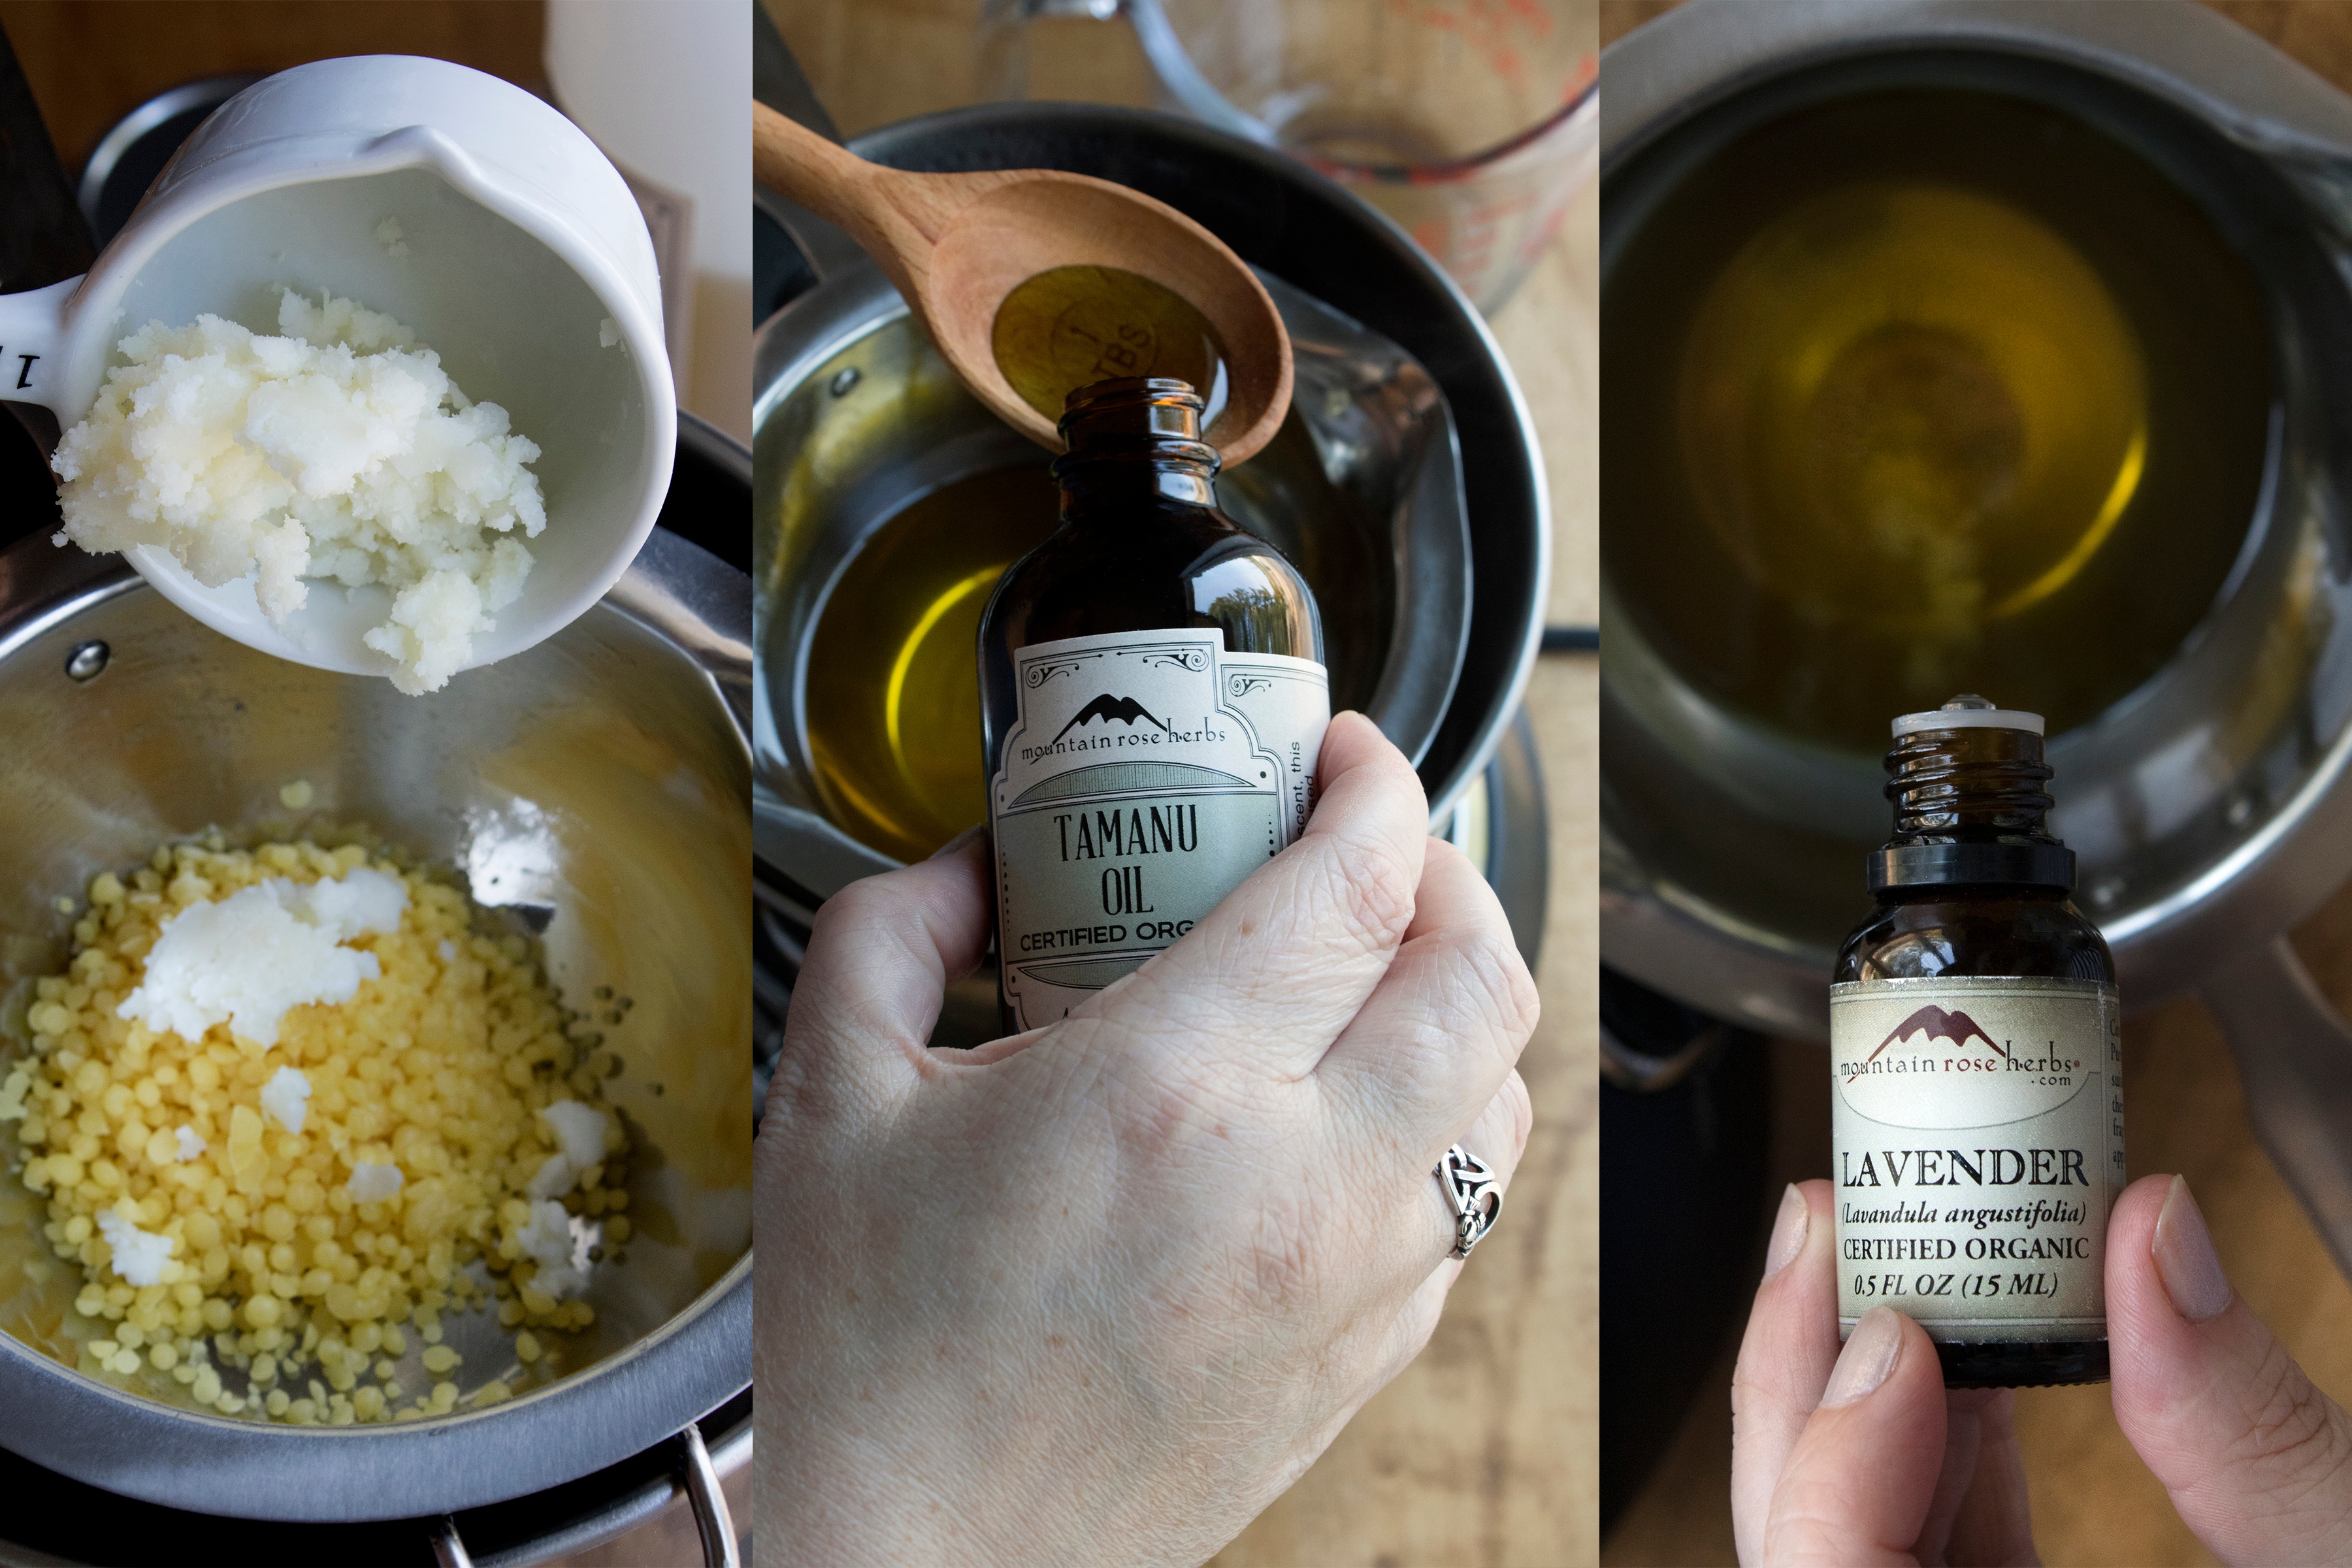 Three-part process showing how to make herbal salve.